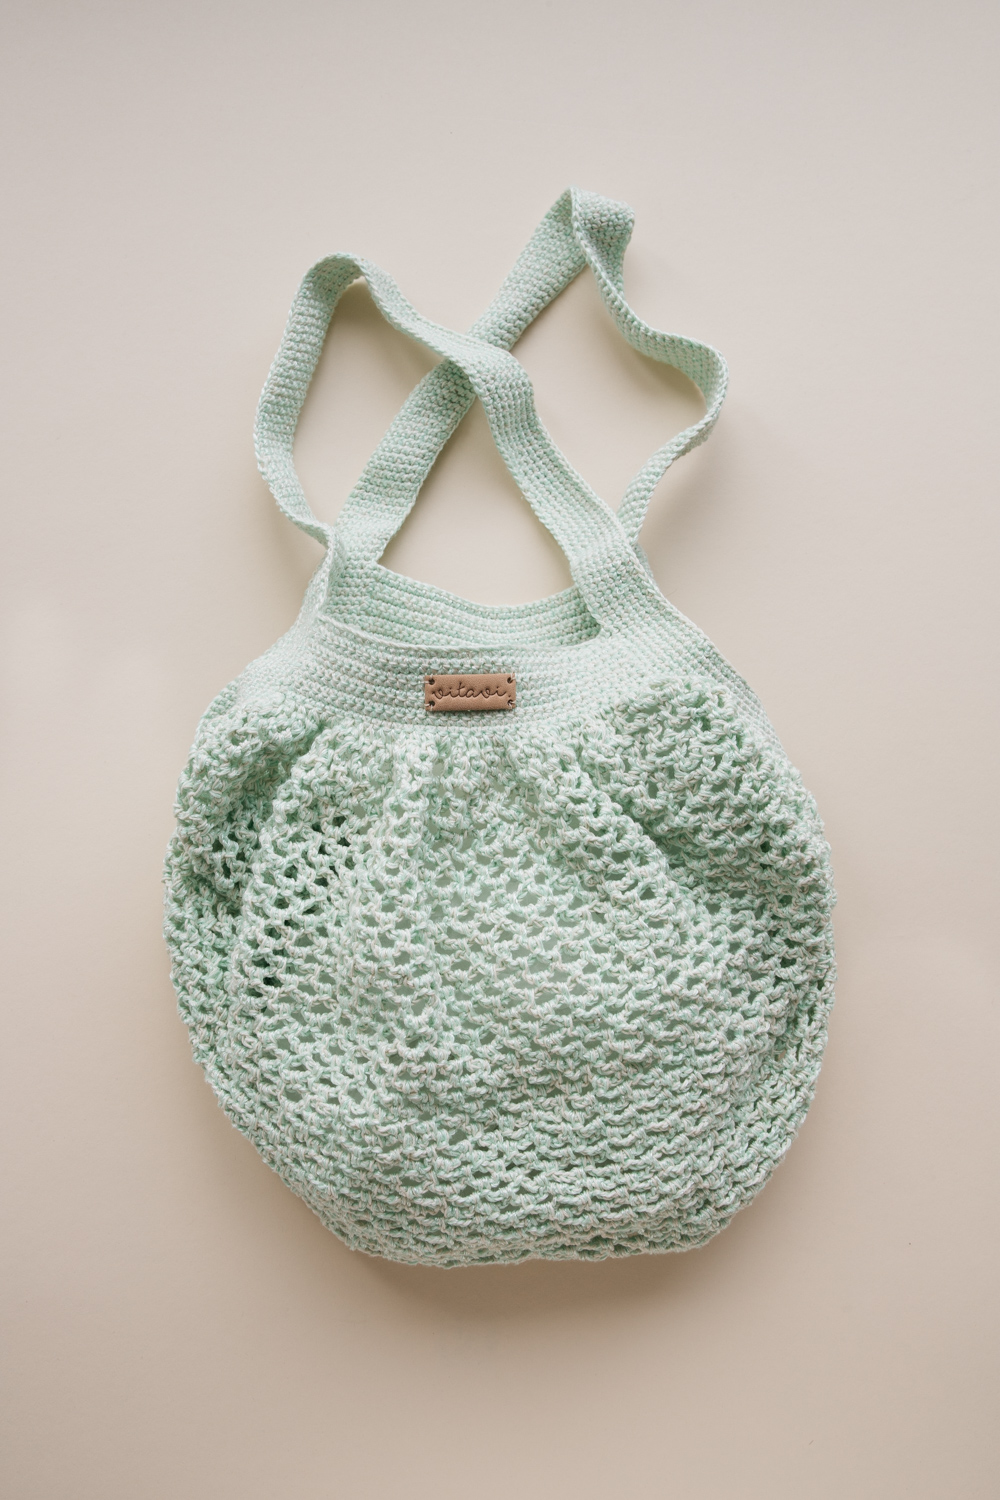 Crochet Net Bag - Mint